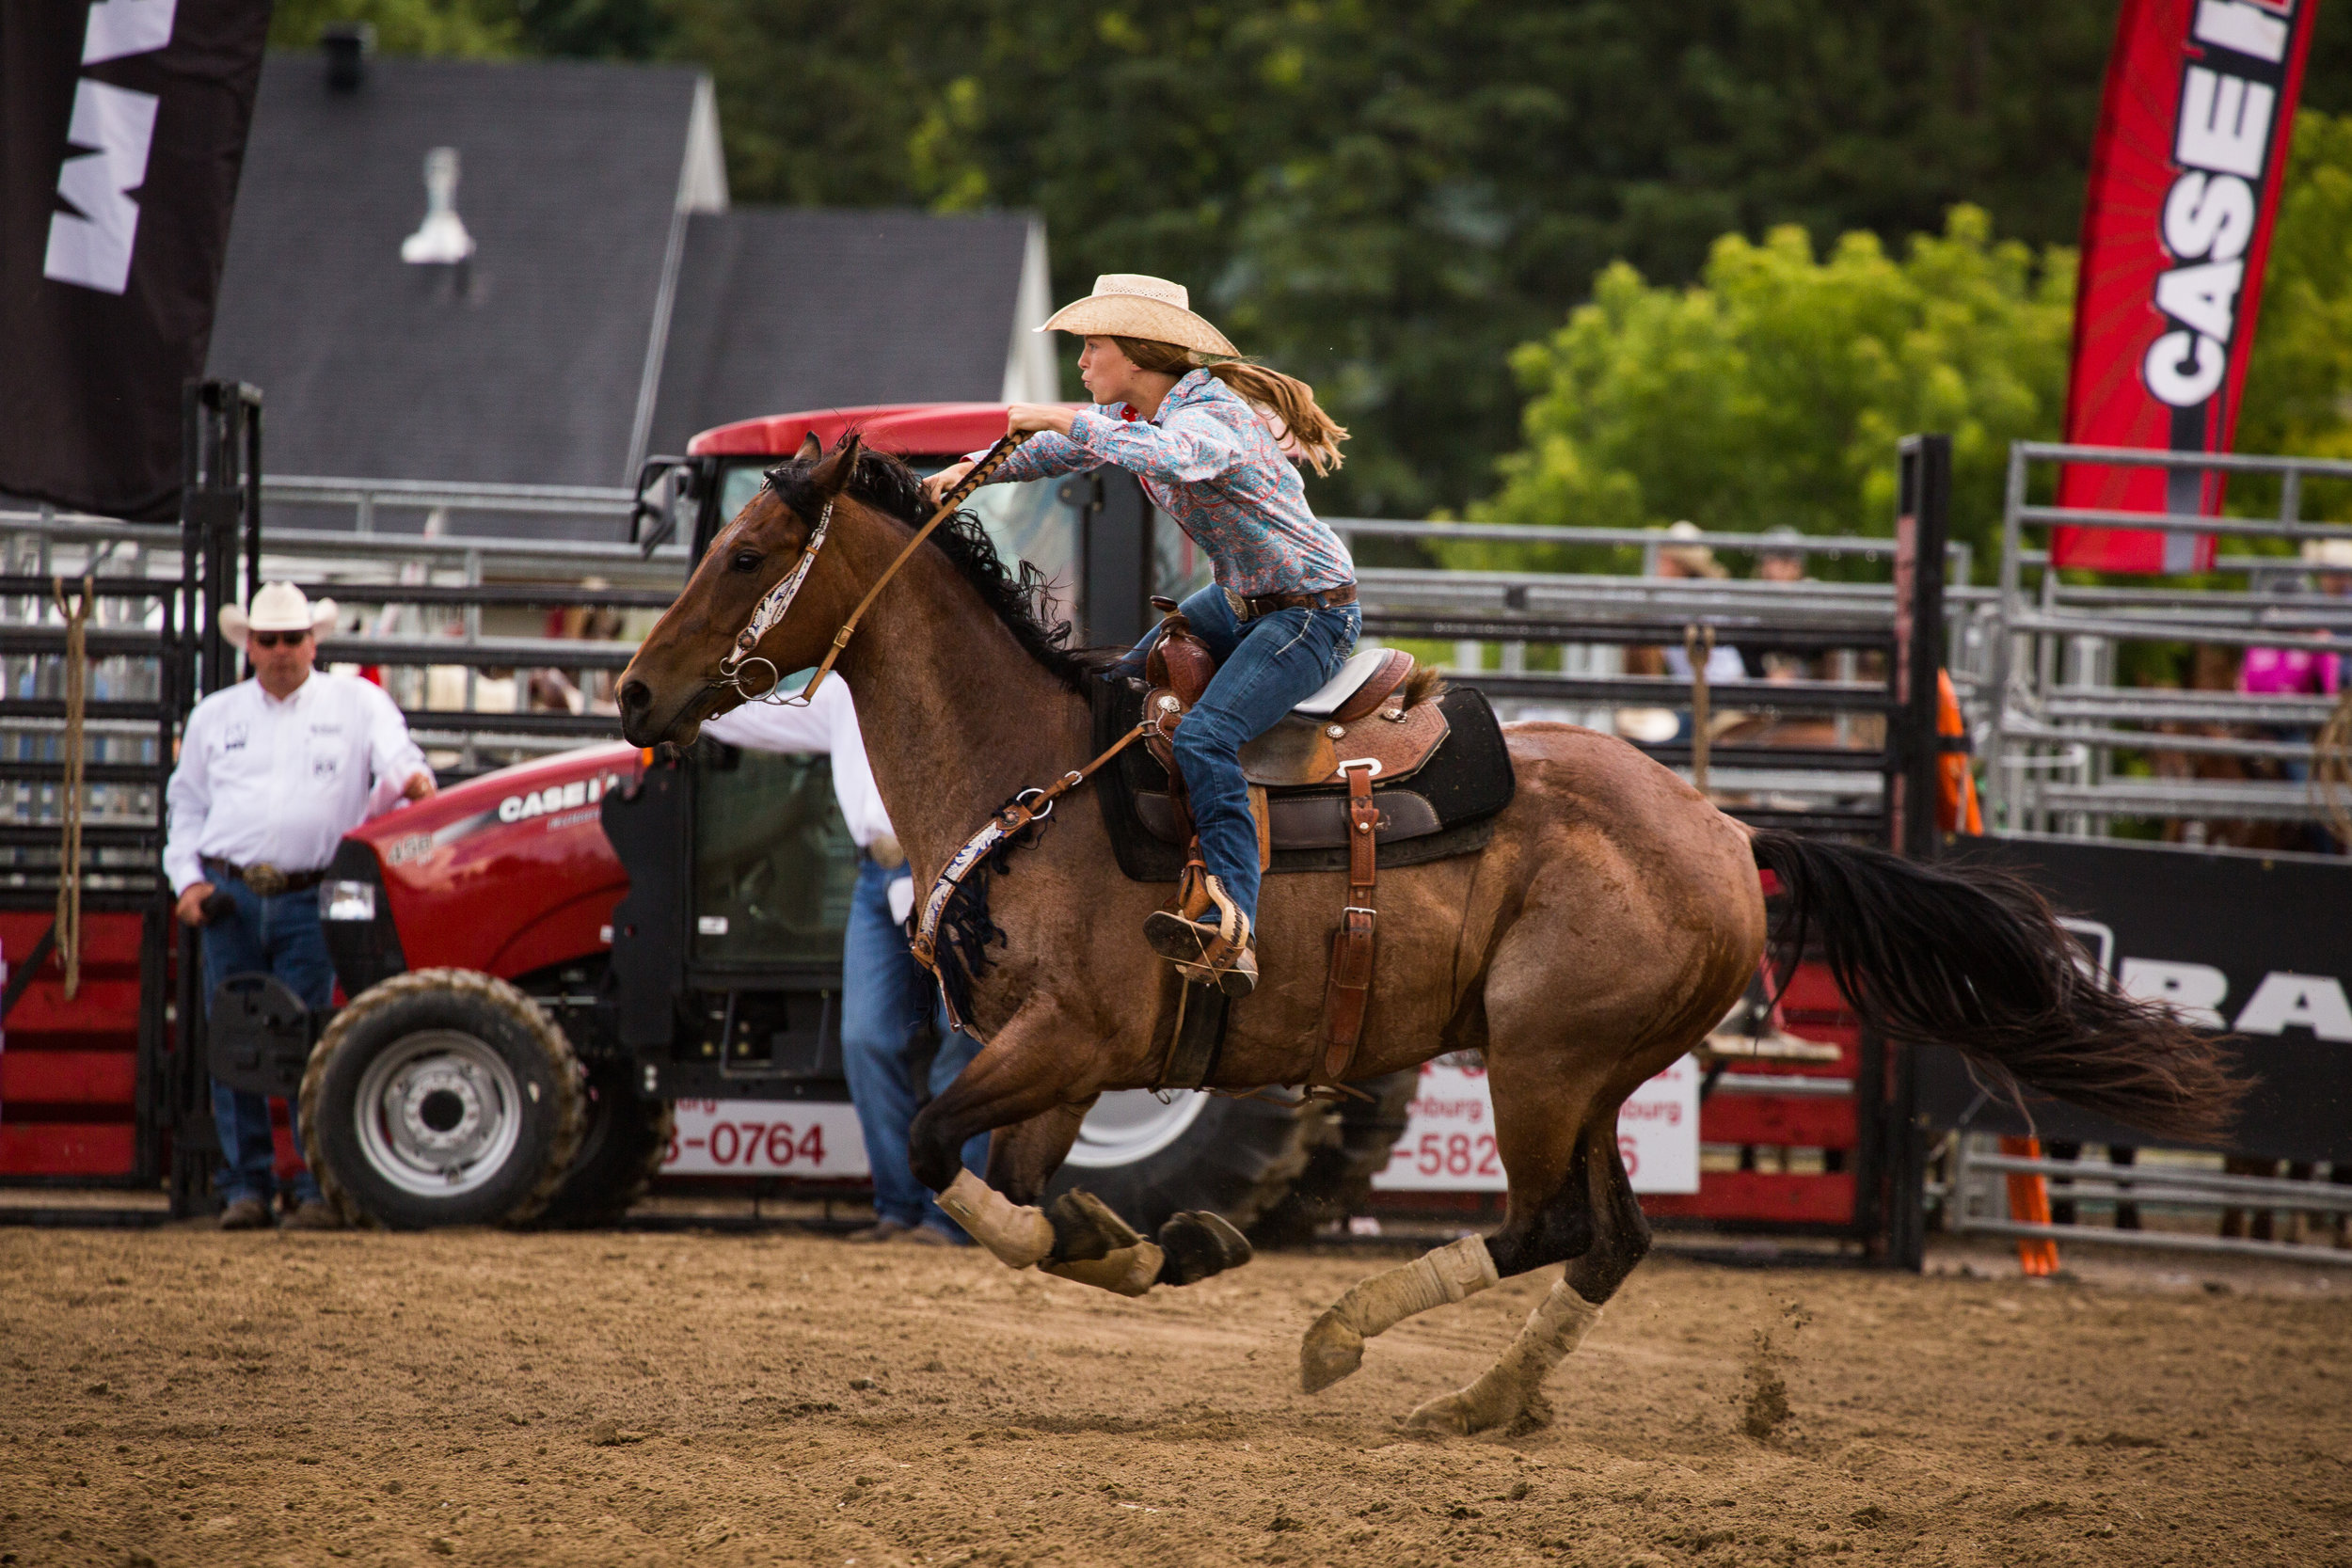 500px.com/jt_foulds/galleries/ram-rodeo-tour-beachburg-ontario-canada